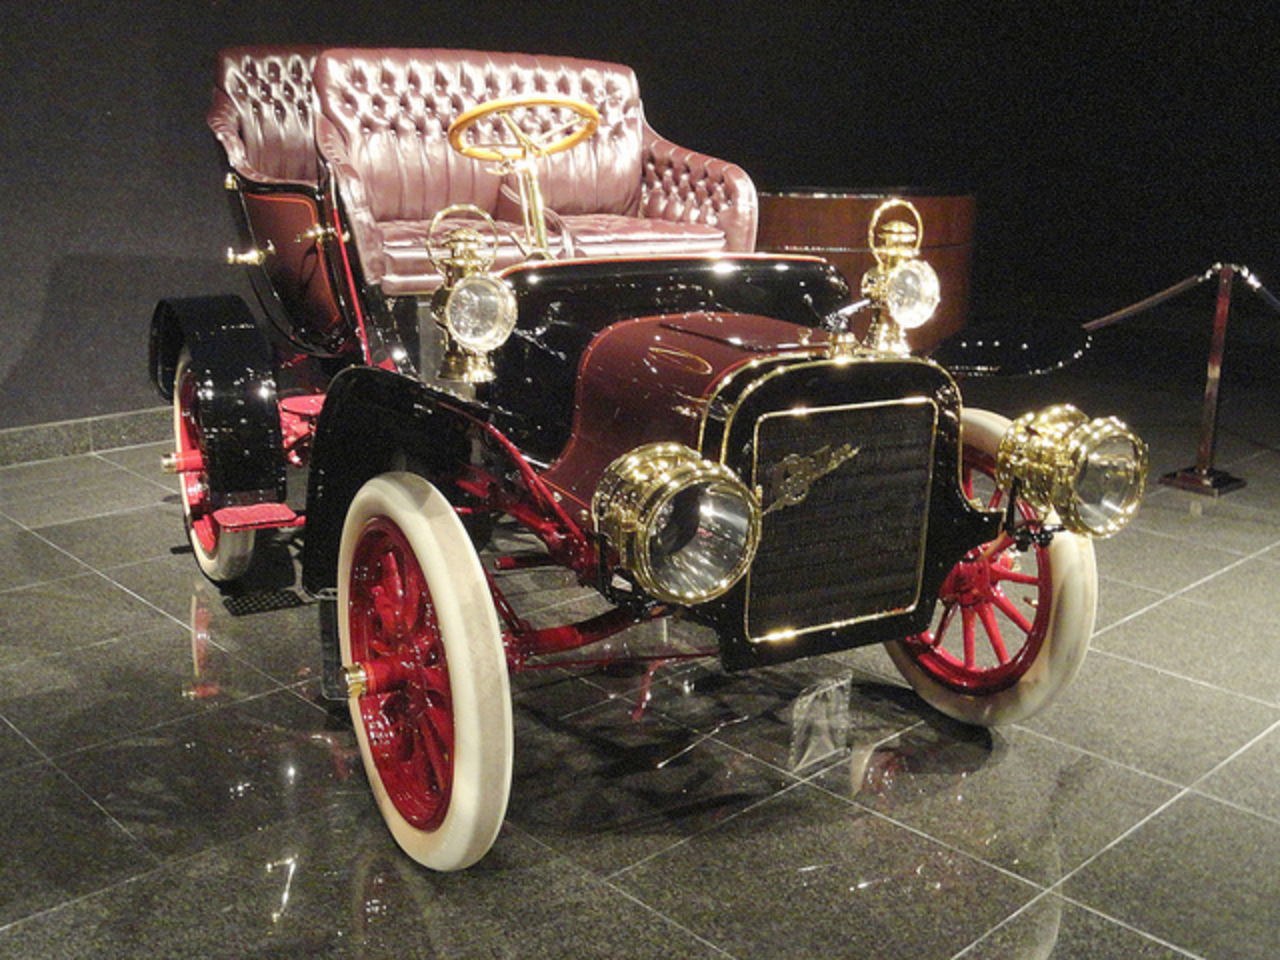 1906 Cadillac Model M, Tulip Tourer. The Cadillac Motor Car Company was